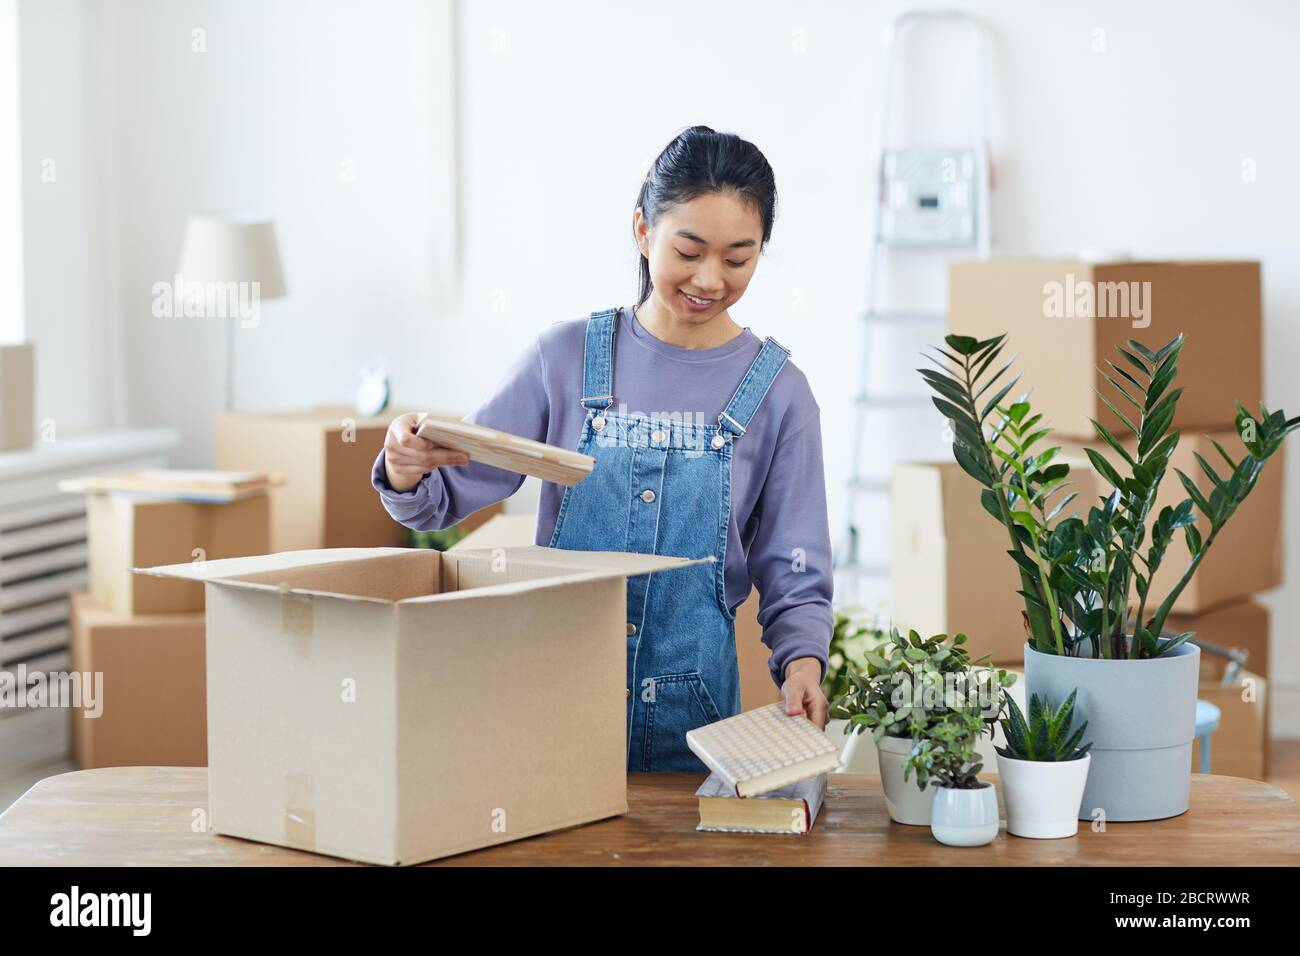 Waist up portrait of young Asian woman packing or unpacking cardboard box and smiling happily while moving into new home, copy space Stock Photo